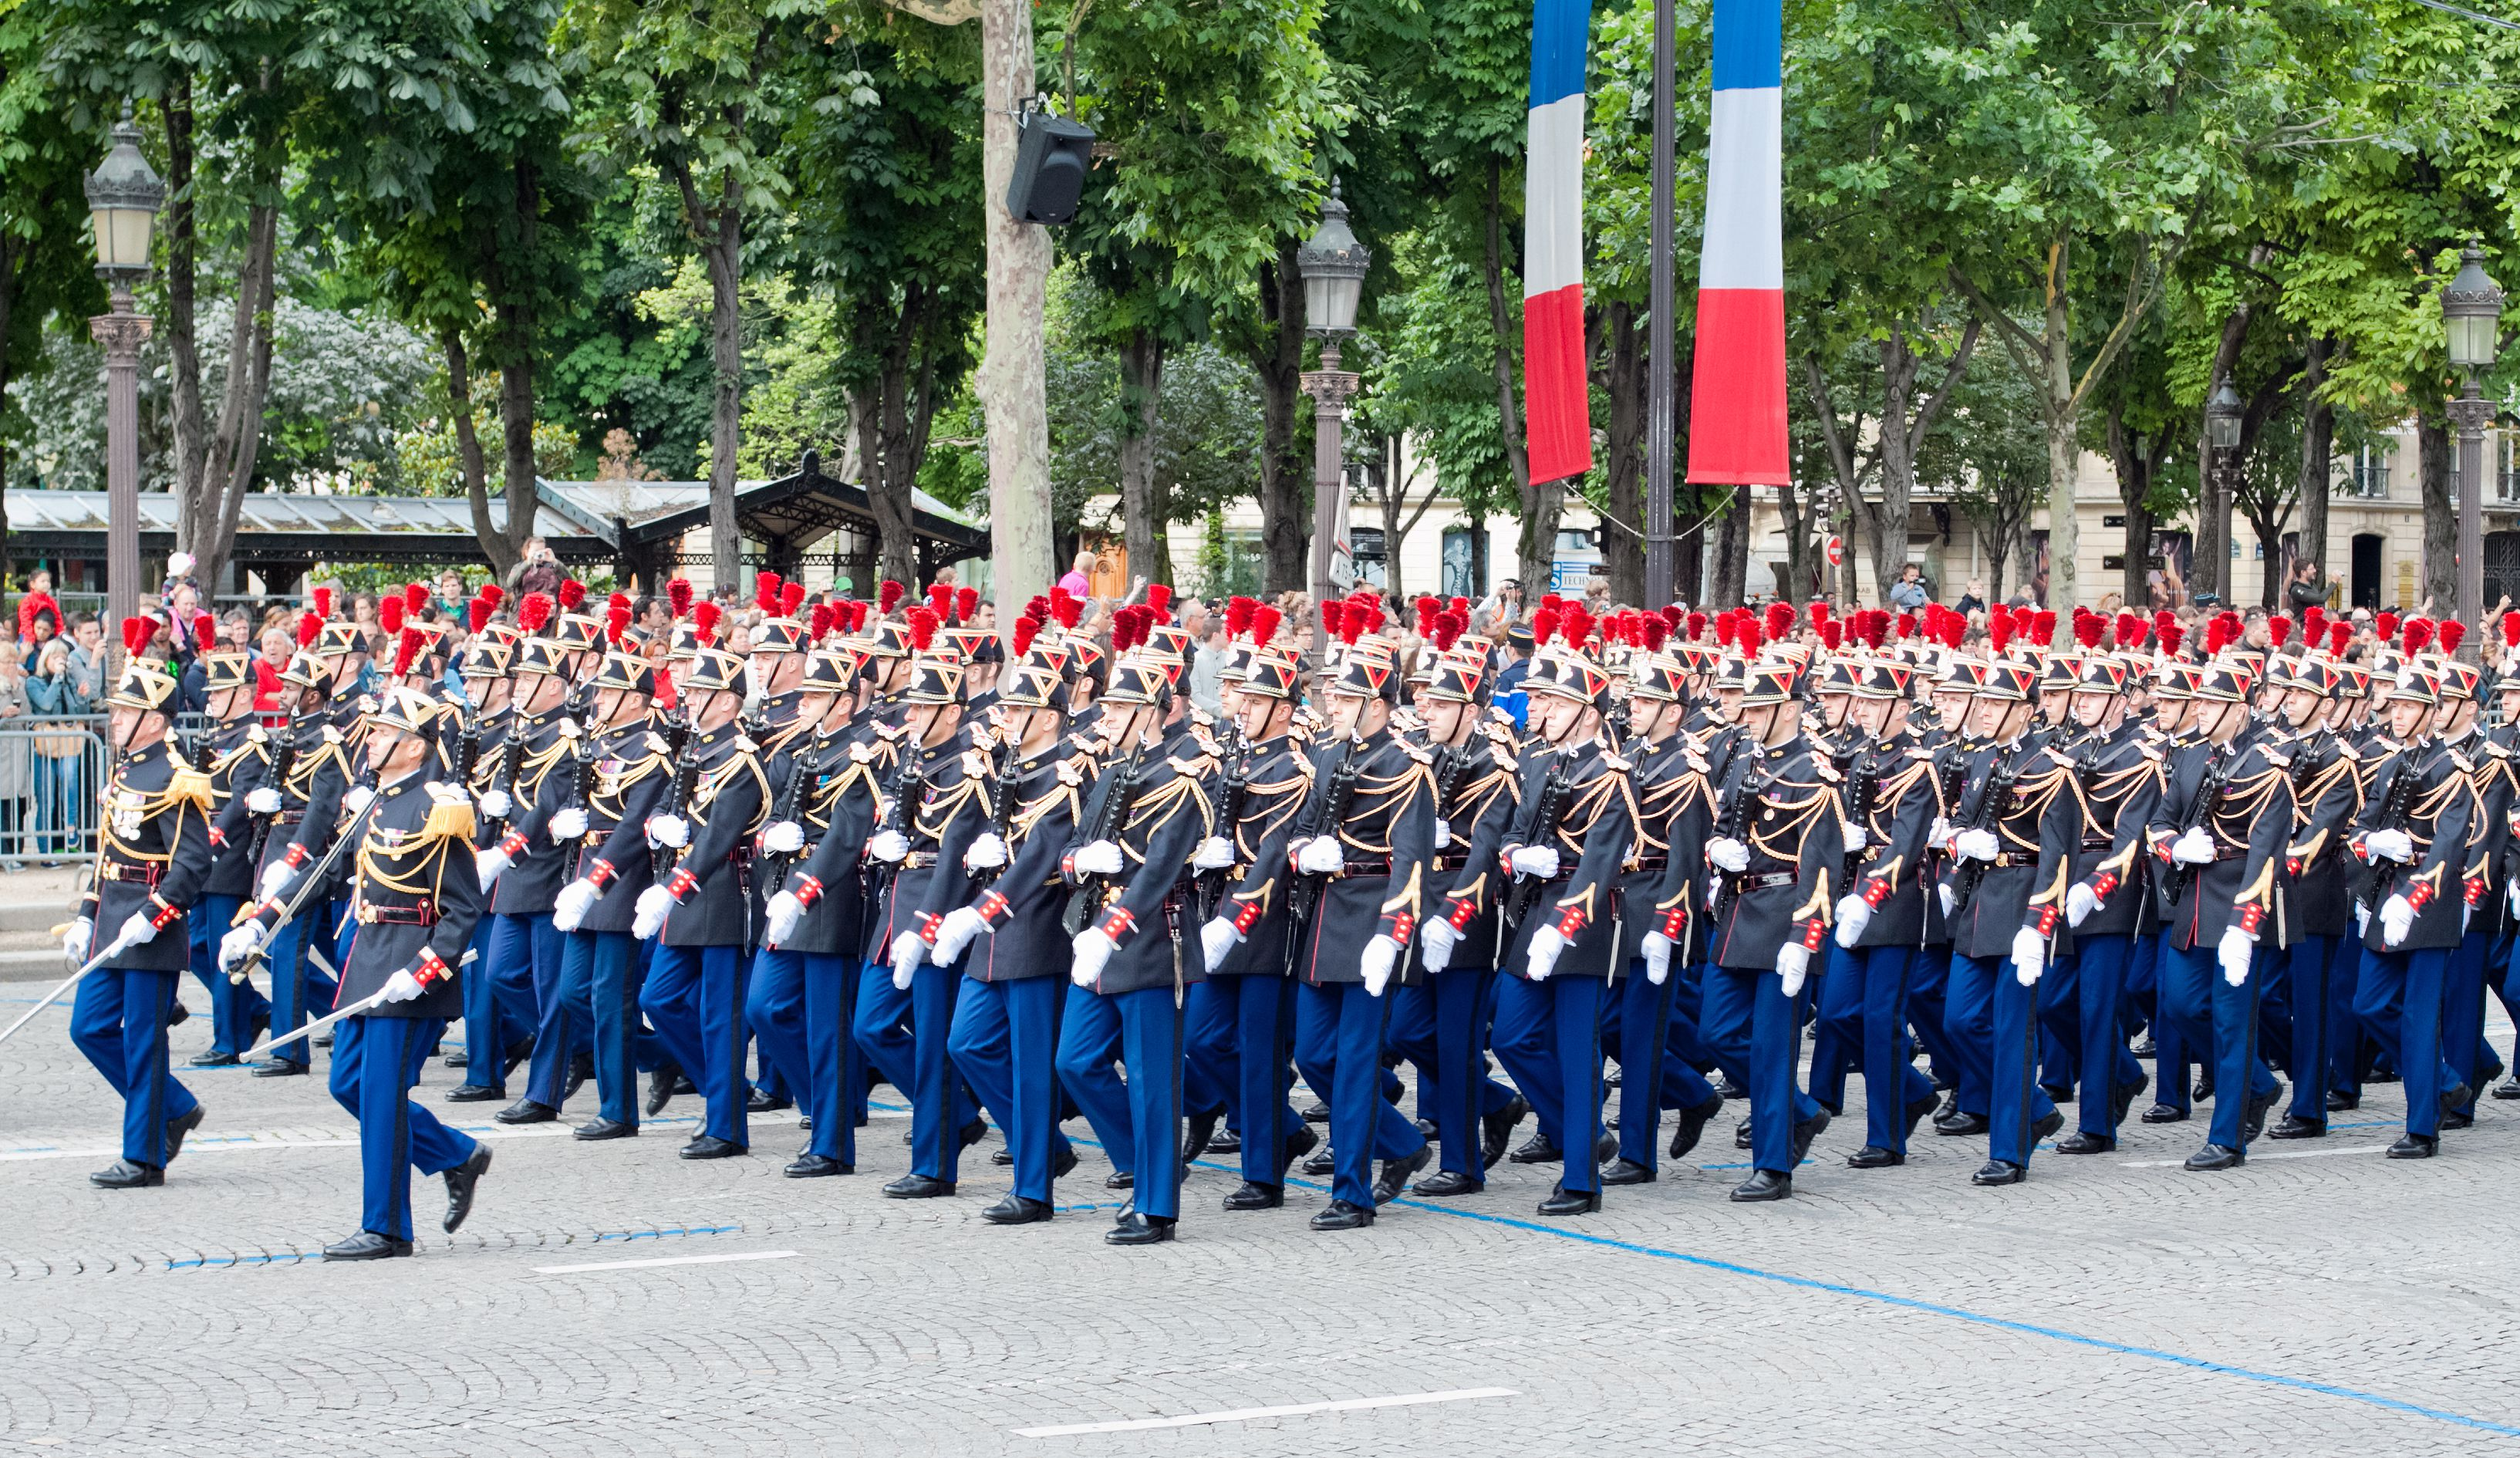 Military parade on Bastille Day on Champs Elysees